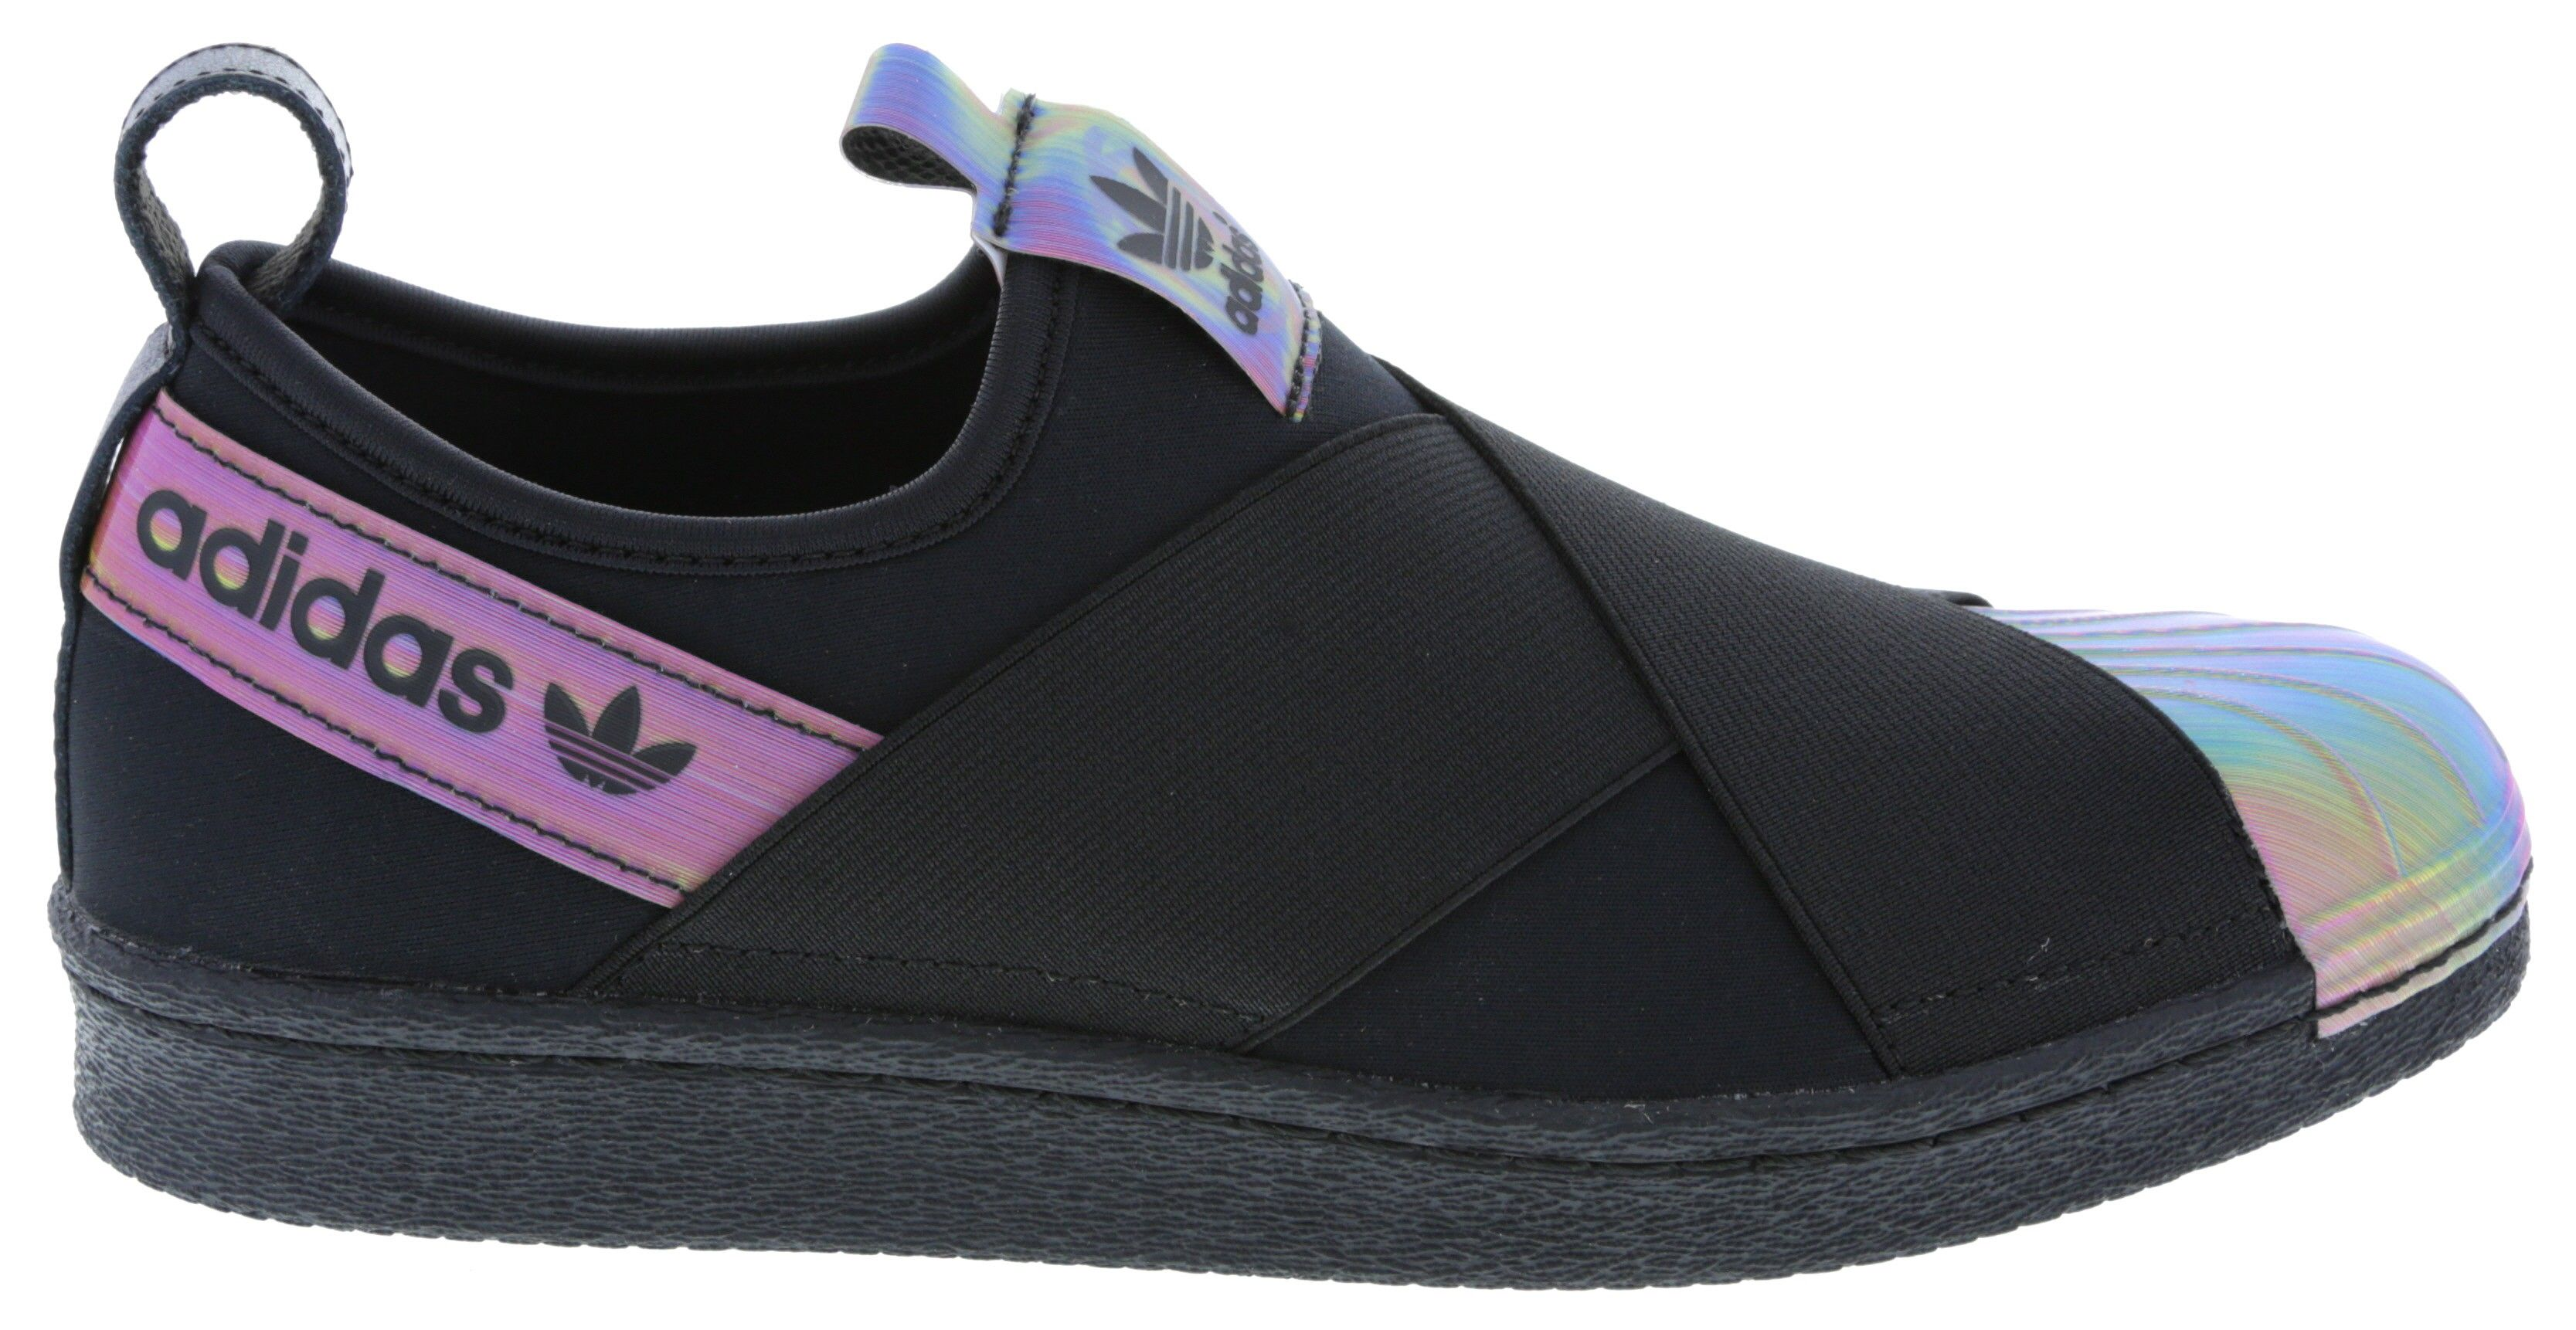 cheap for discount a906b 60c8a UK Rita Ora Superstar Slip-On Sneakers in Black & Rainbow ...